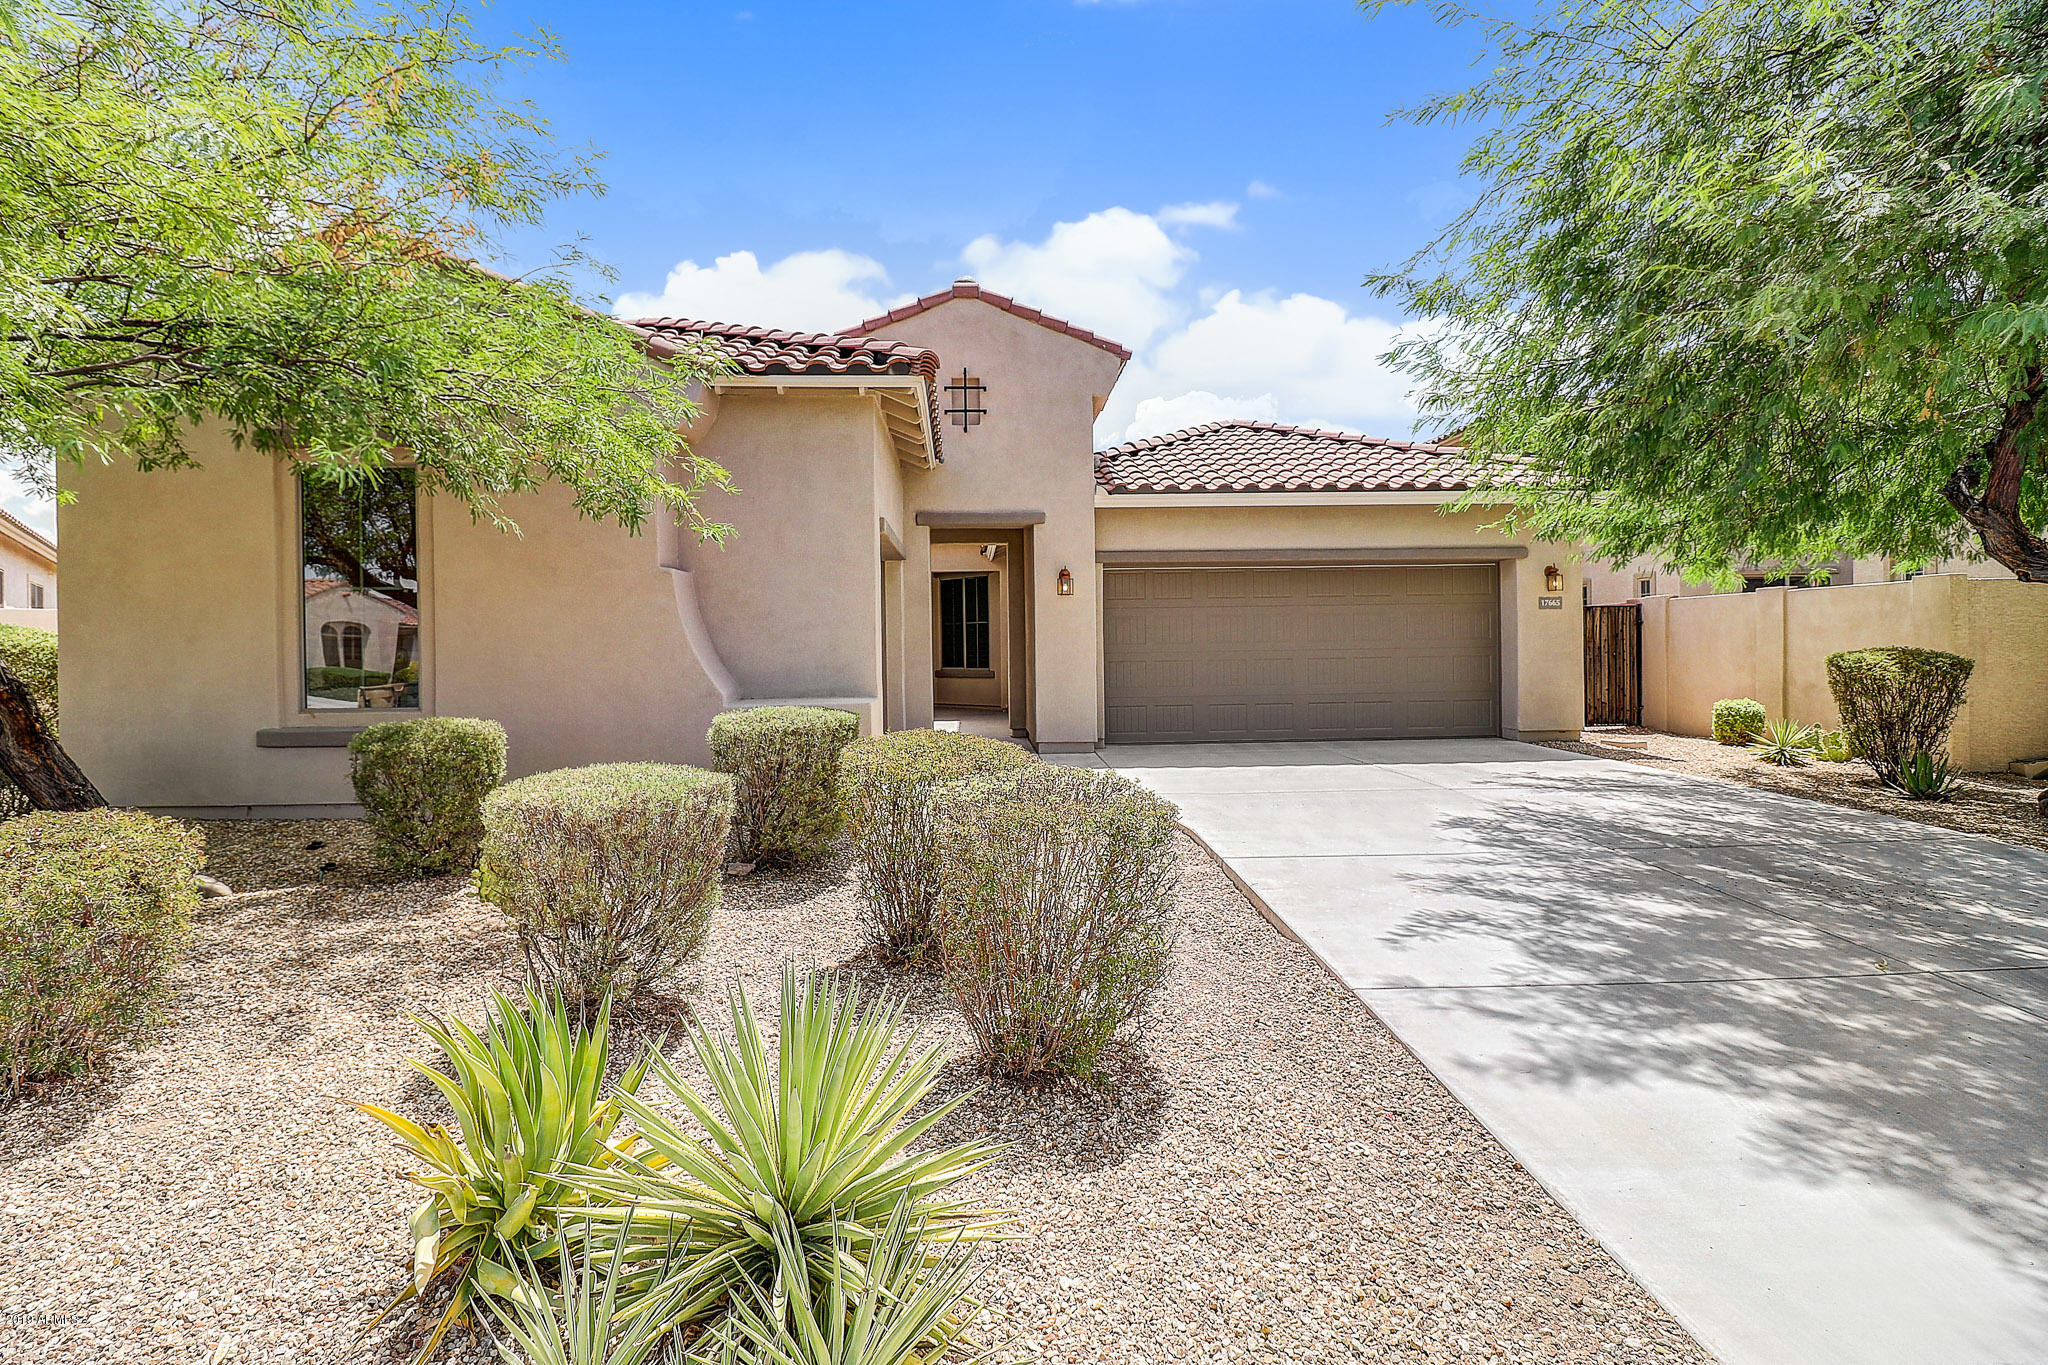 17665 W AGAVE Road, Goodyear, AZ 85338, 3 Bedrooms Bedrooms, ,Residential Lease,For Rent,17665 W AGAVE Road,6301894